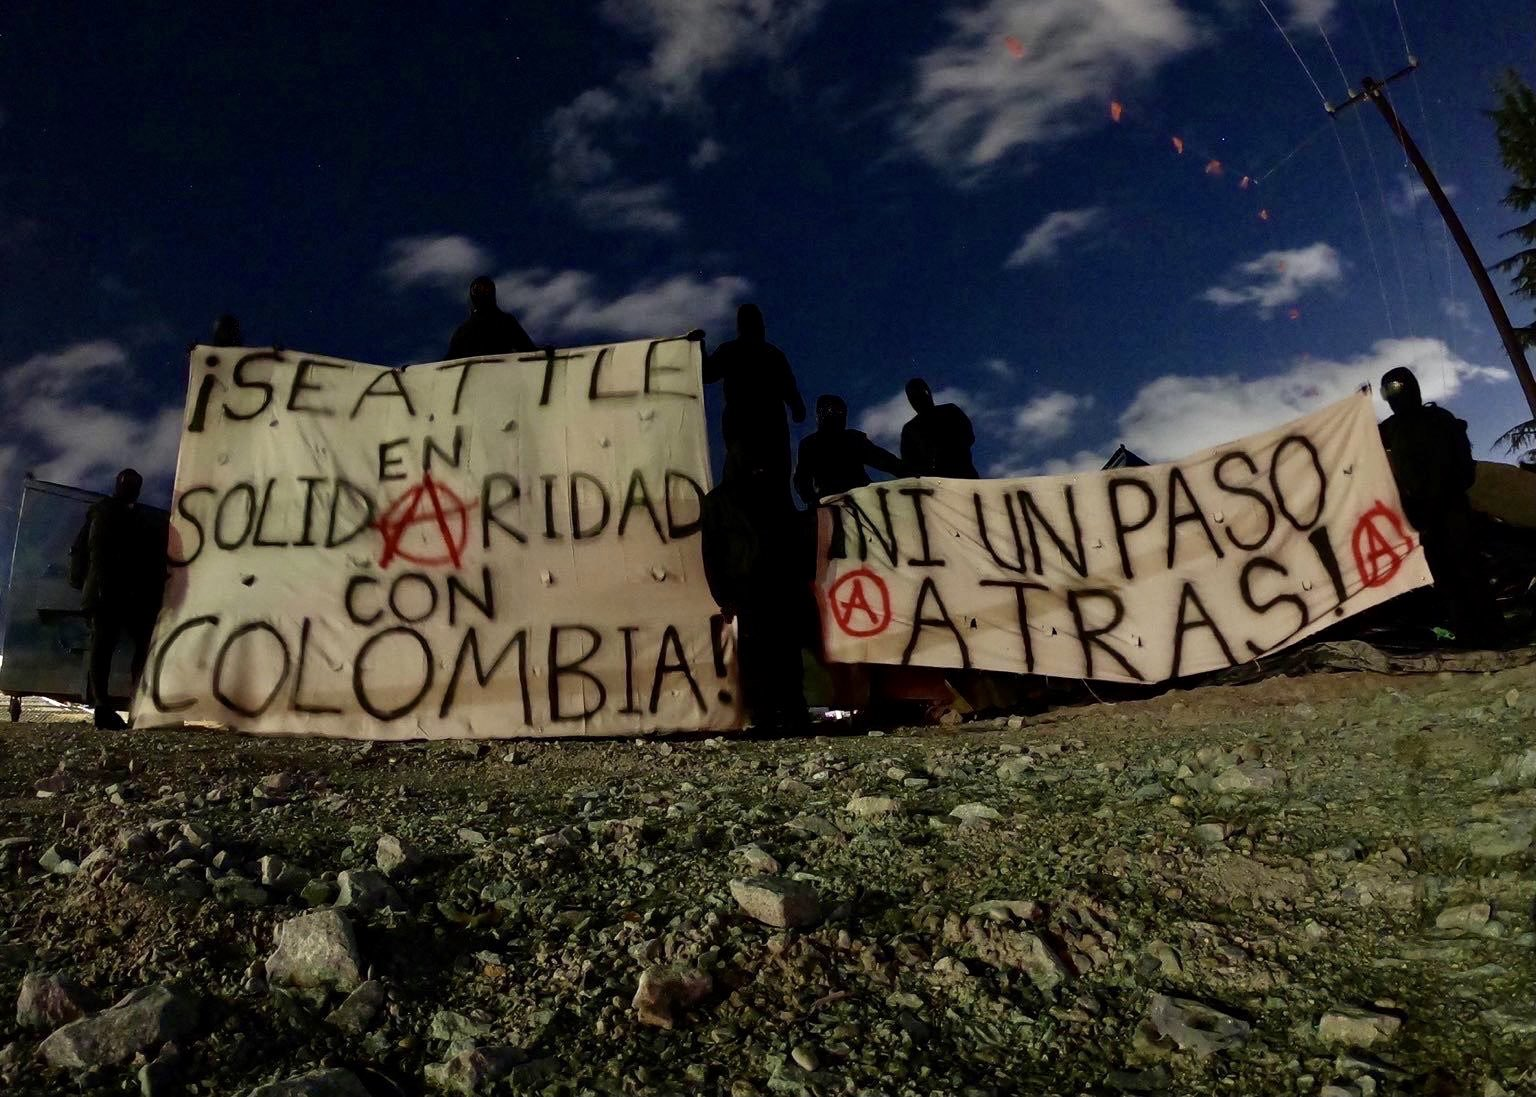 Anarchists in Seattle Protest in Solidarity With Colombia